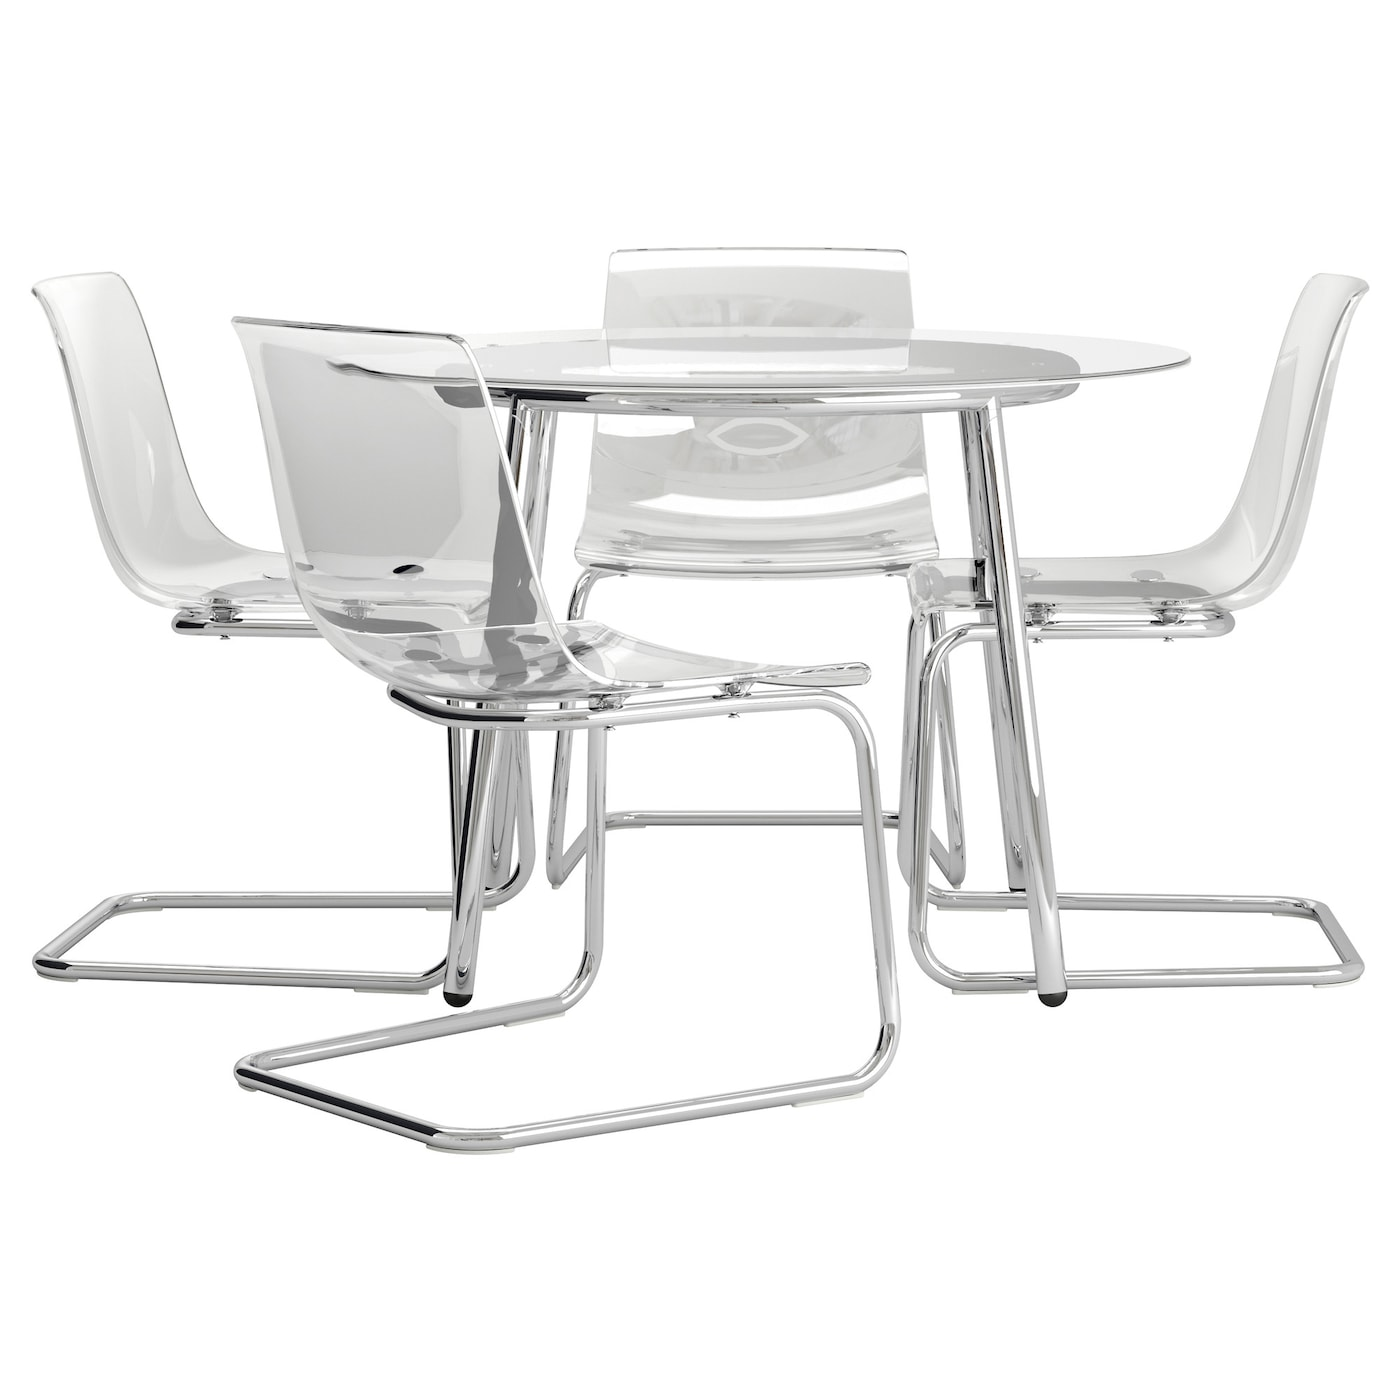 Salmi tobias table and 4 chairs glass transparent 105 cm for Table chaise ikea